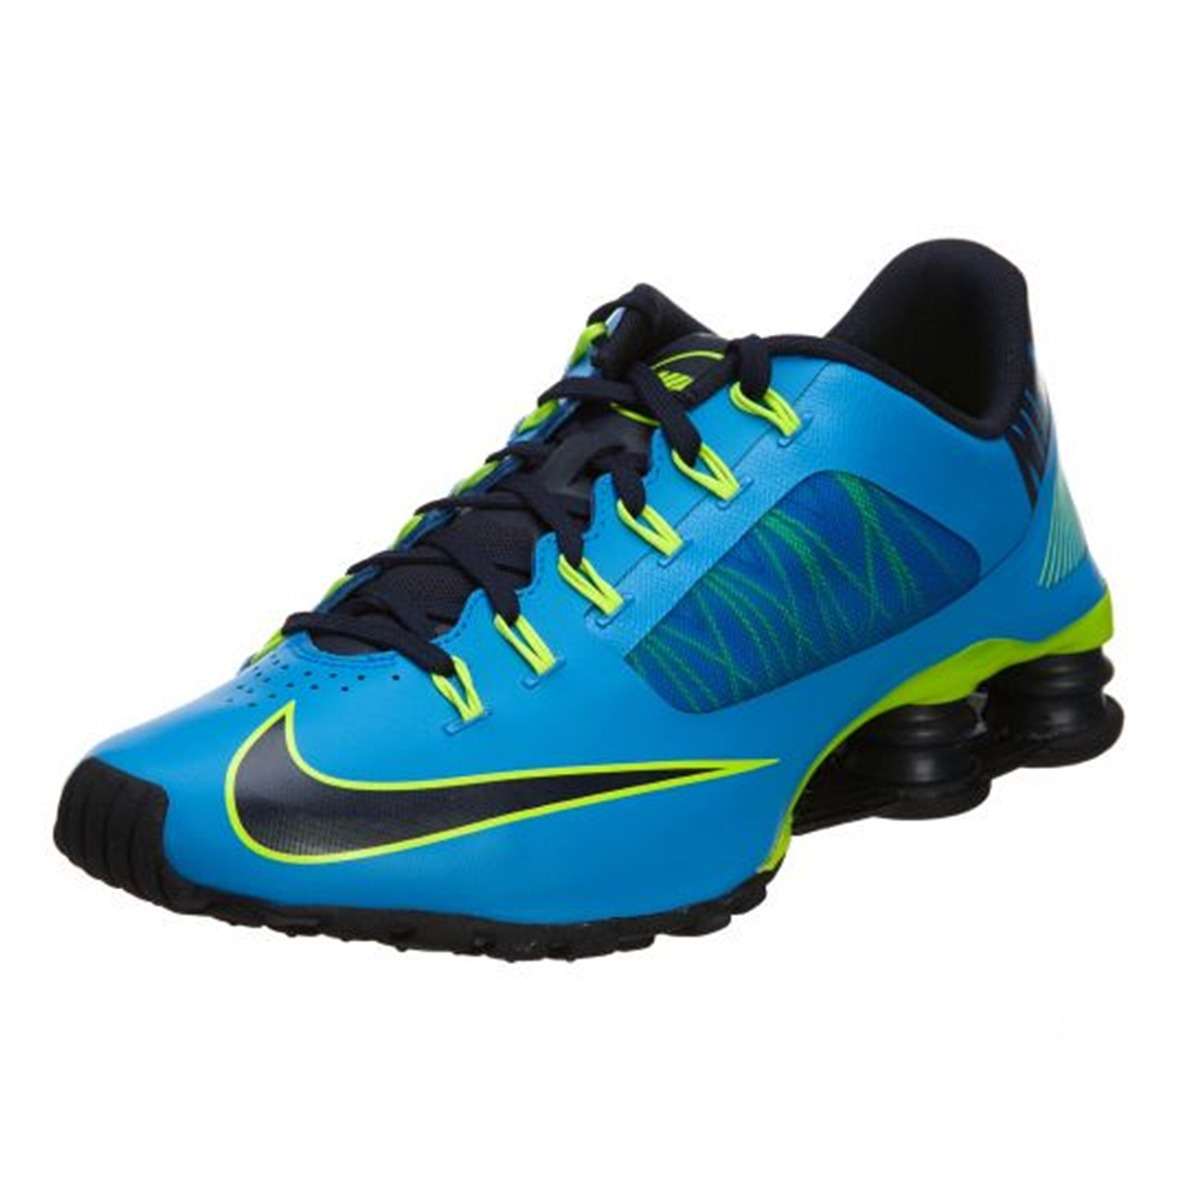 new style bb266 8119f ... tenis nike shox superfly r4 para hombre.